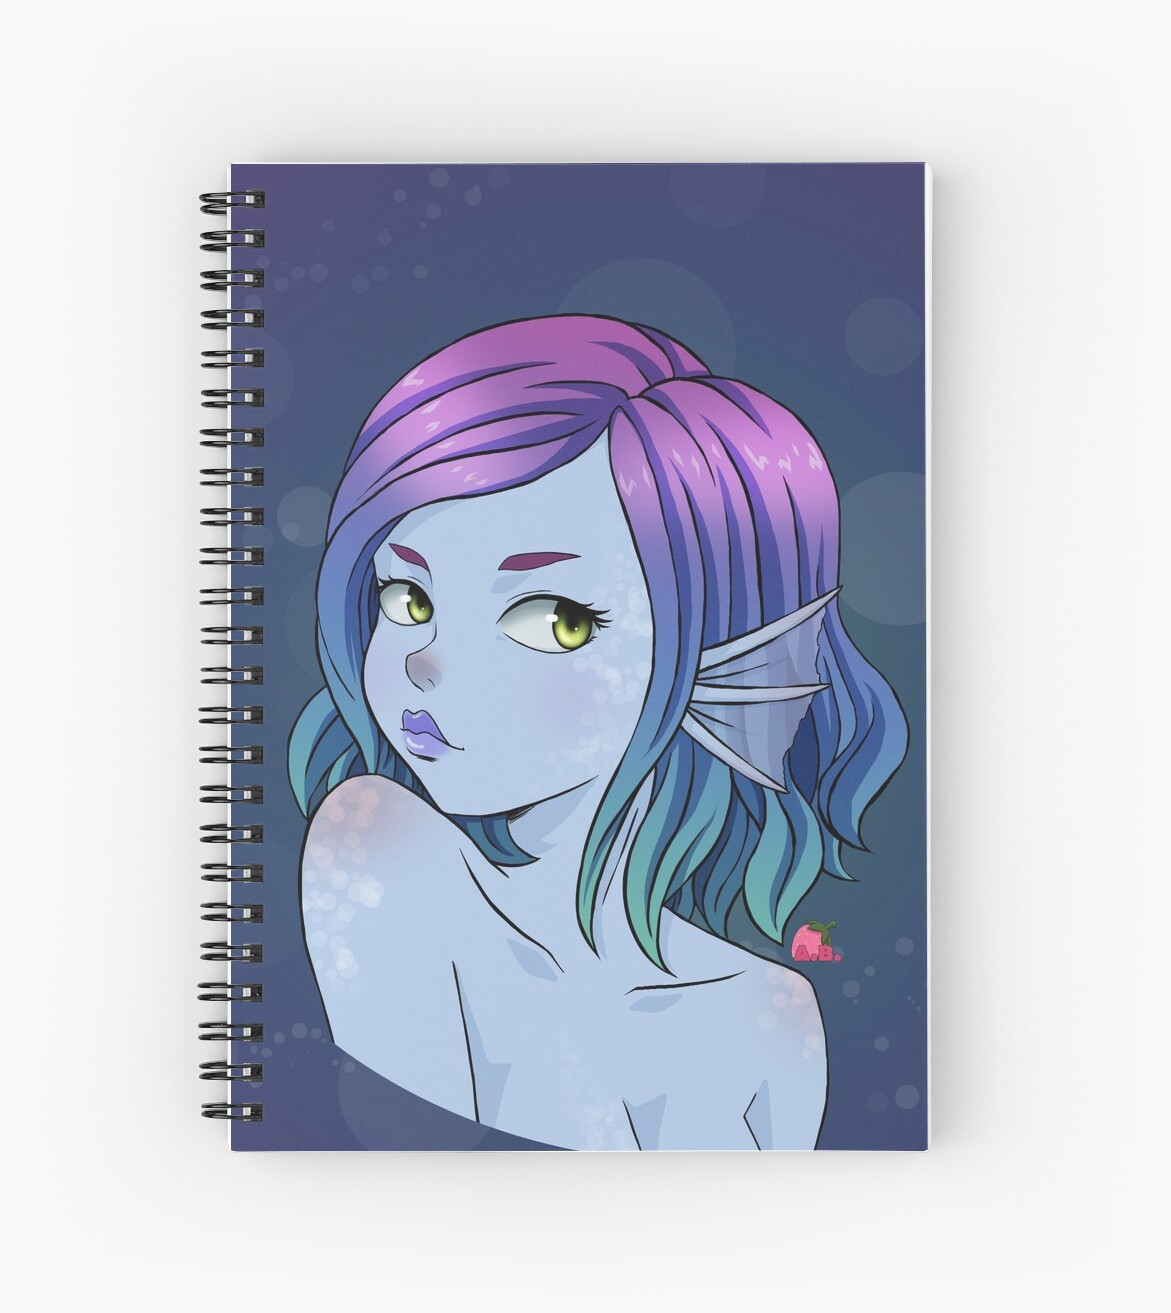 Anime Alien Girl 'sexy anime alien girl' spiral notebookamy baldwyn